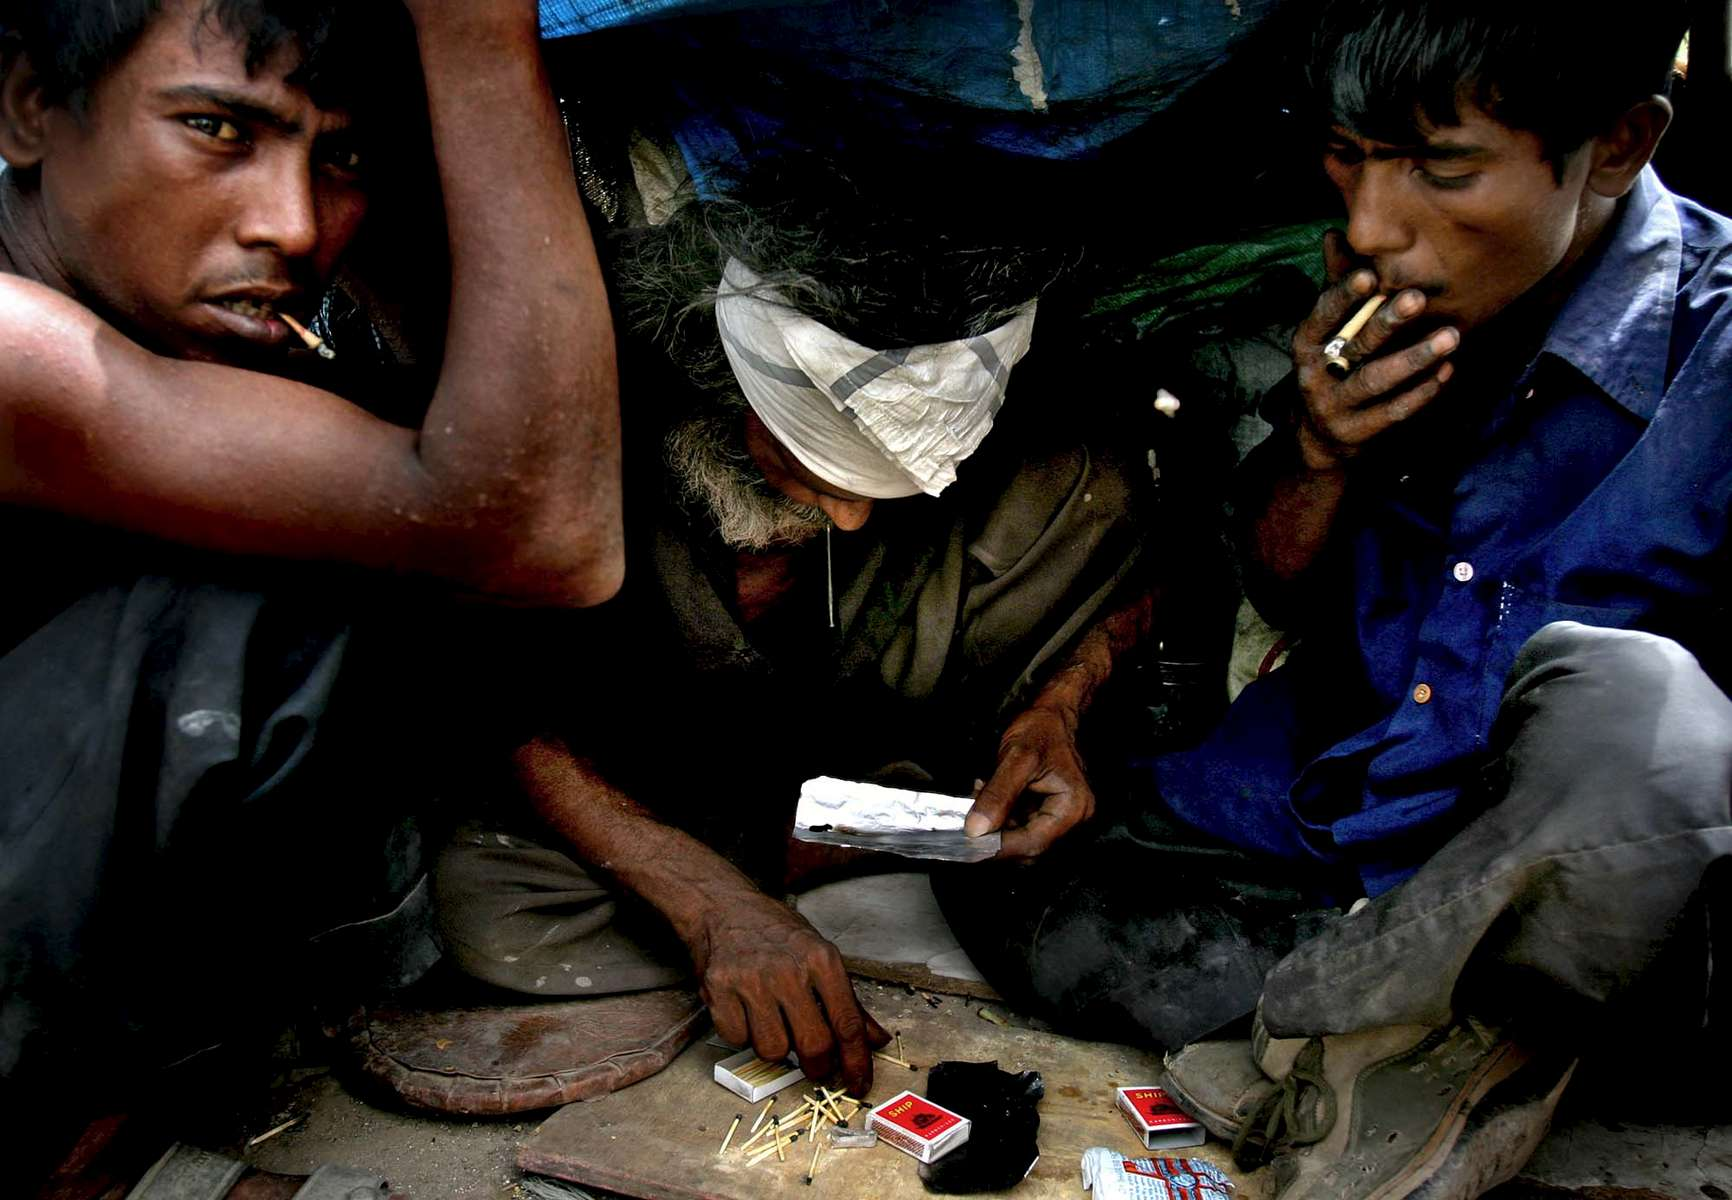 Alburt, center, smokes {quote}Smack{quote} with the help of his friend, Abdul Qadir, left, while Salim keeps a watchful eye out. Many drug addicts use {quote}Smack,{quote} or smokable heroin, to cope with the harsh reality of life in Yamuna Pushta.